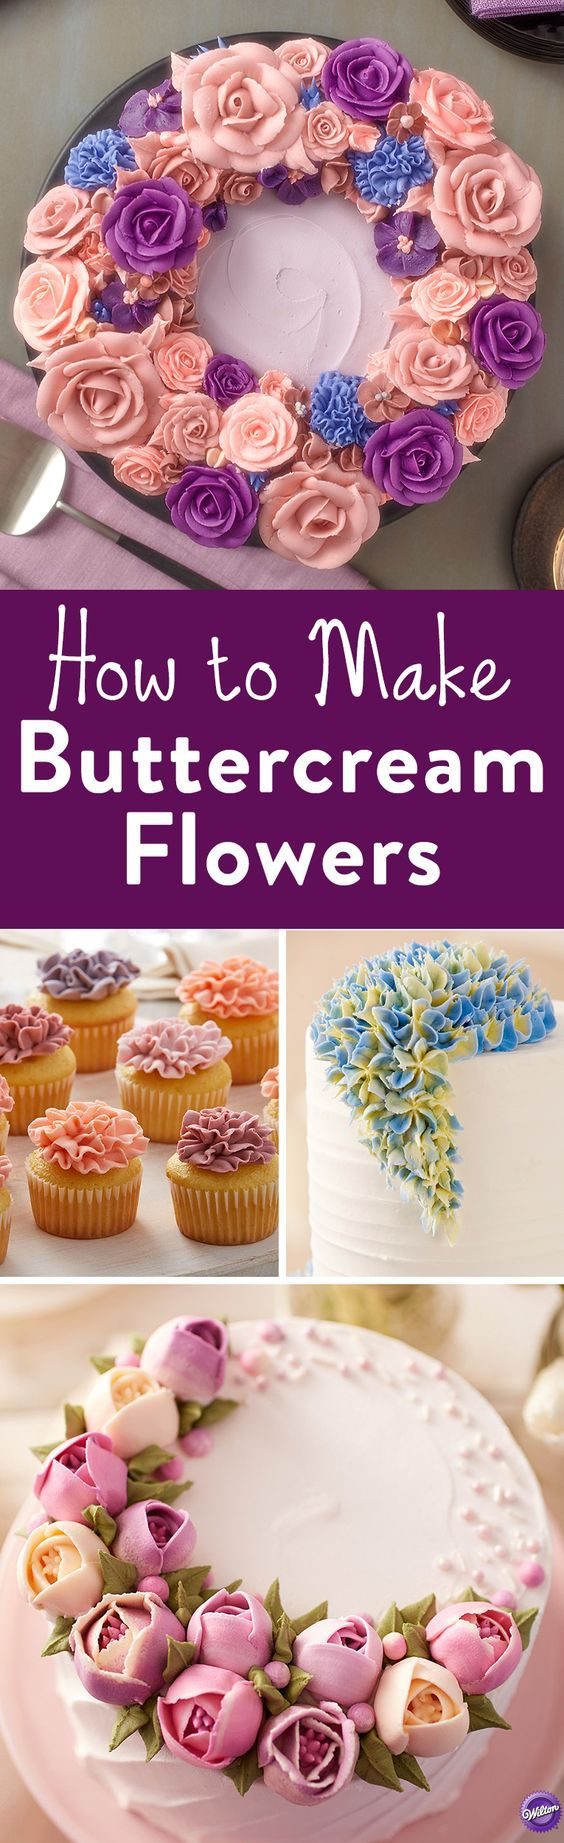 The Must-Have Cake Decorating Tools for Beginners